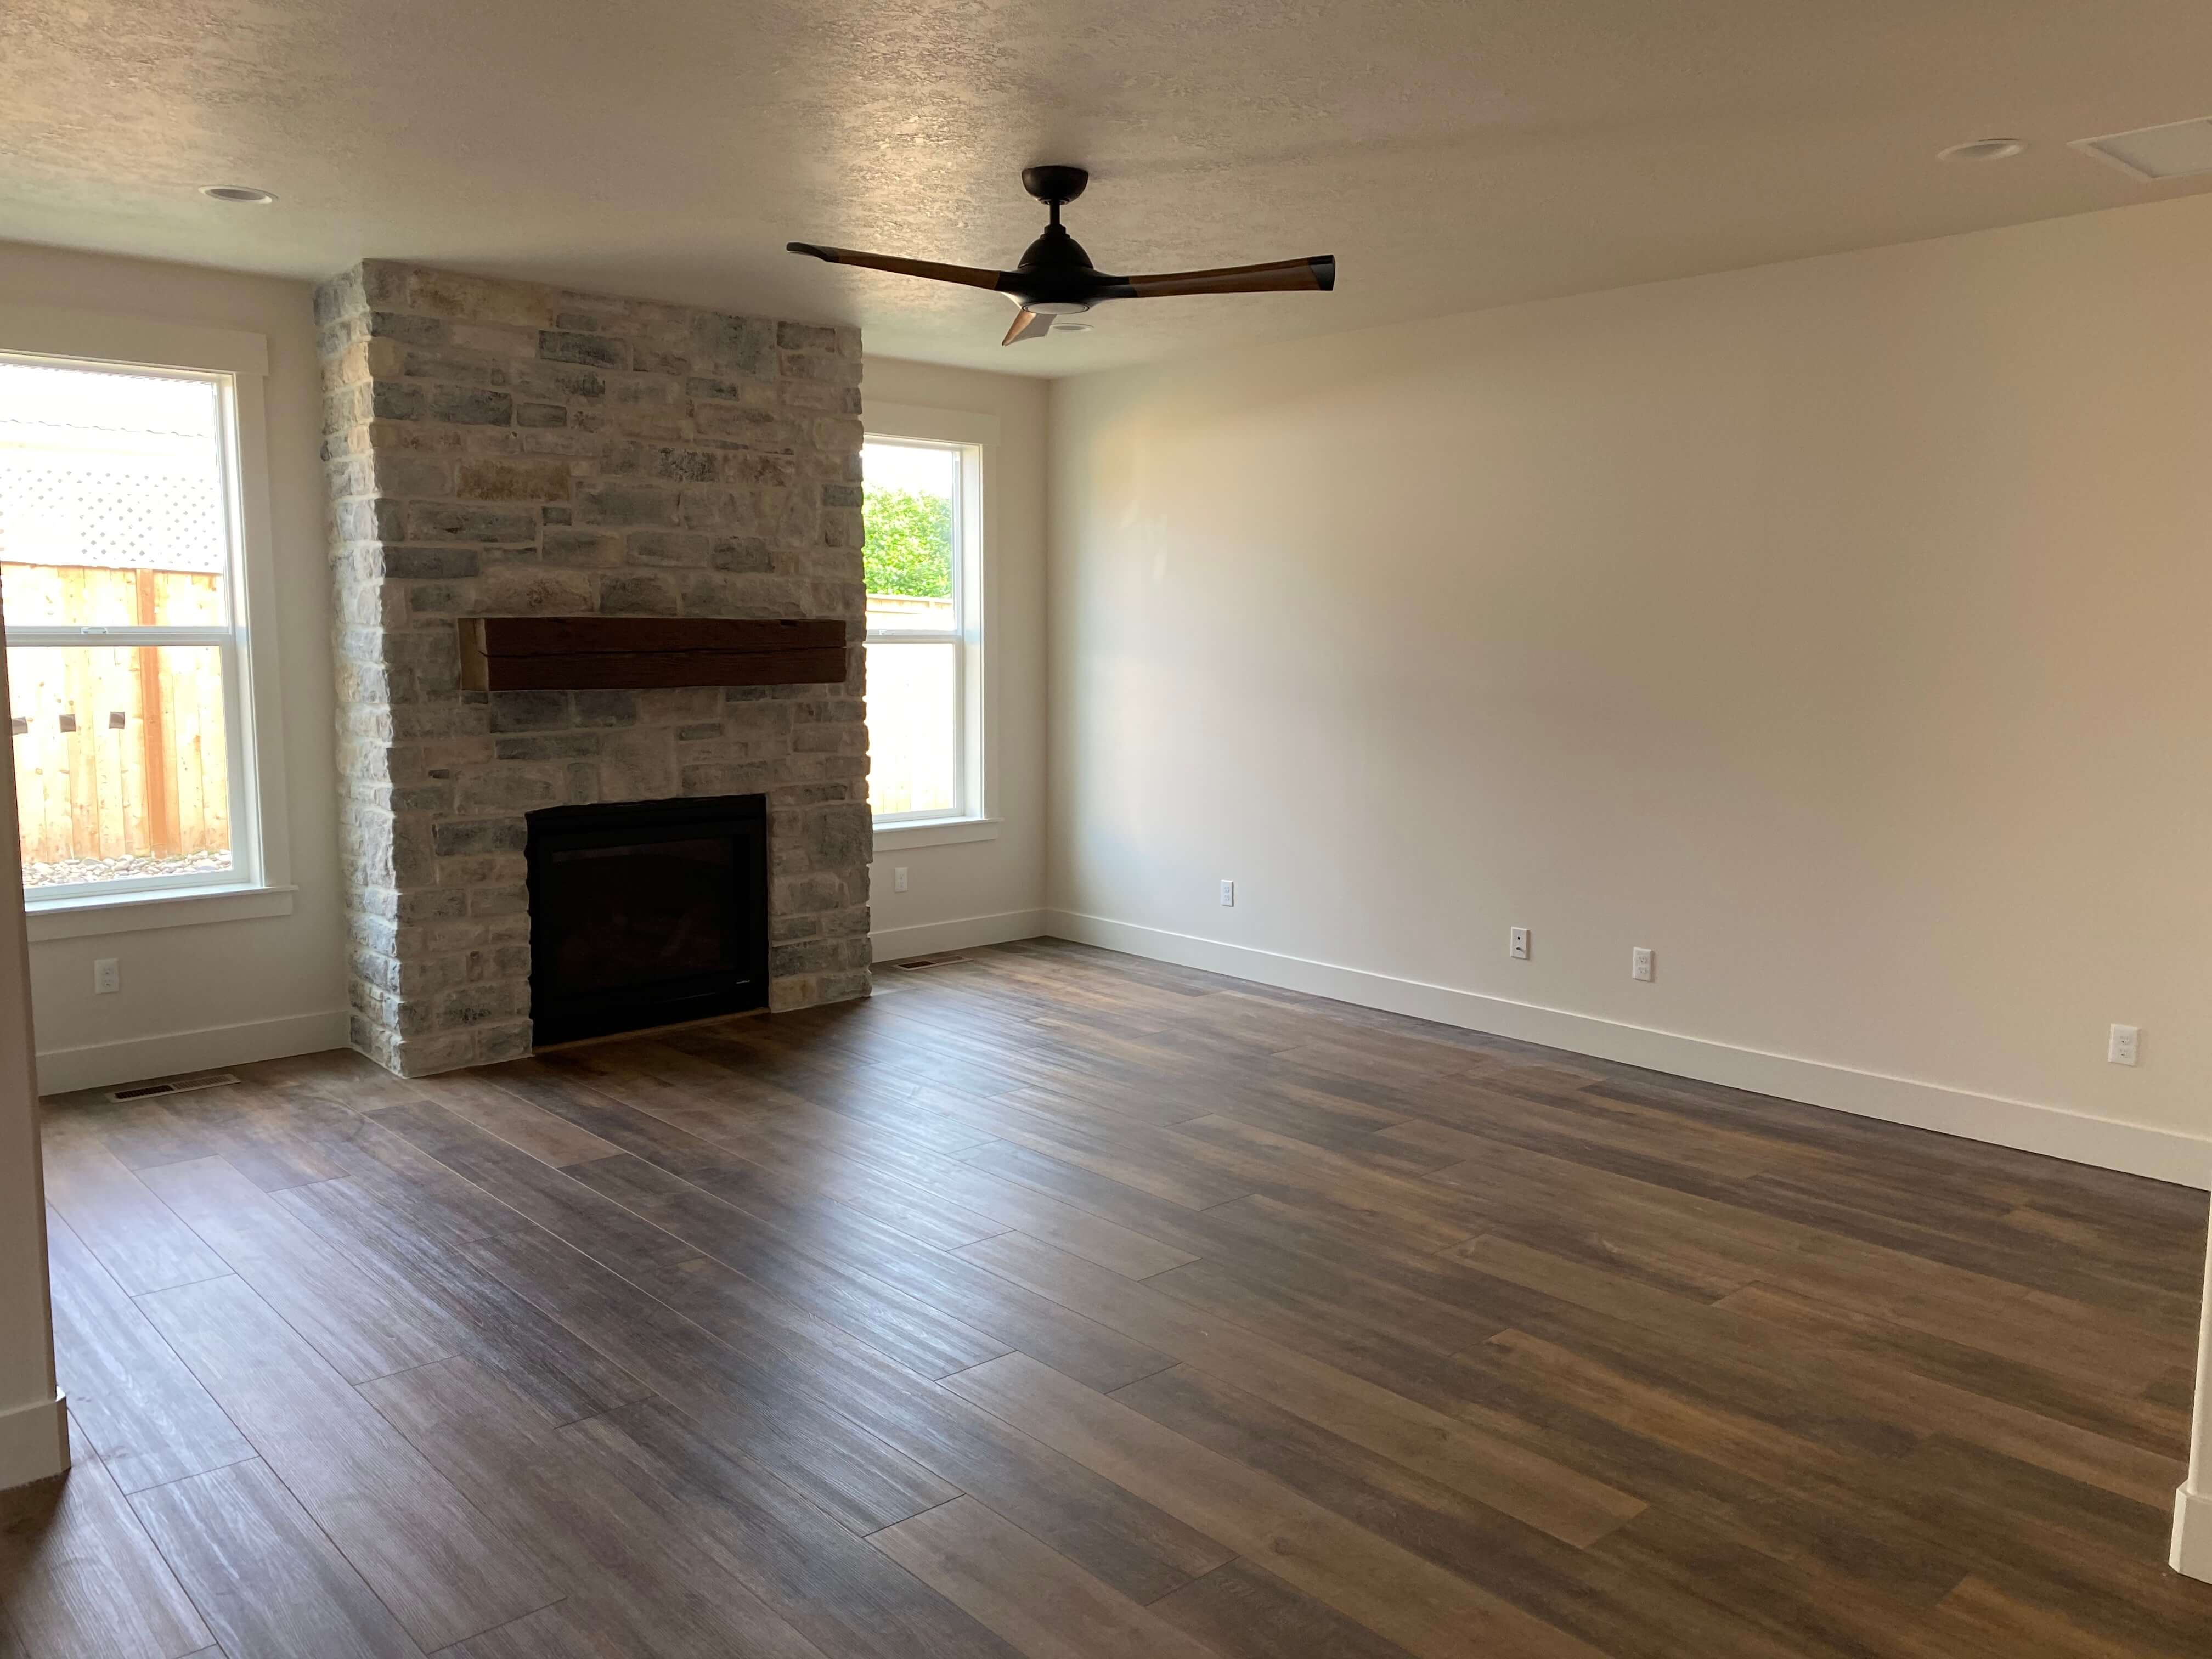 Laminate Flooring with Fireplace